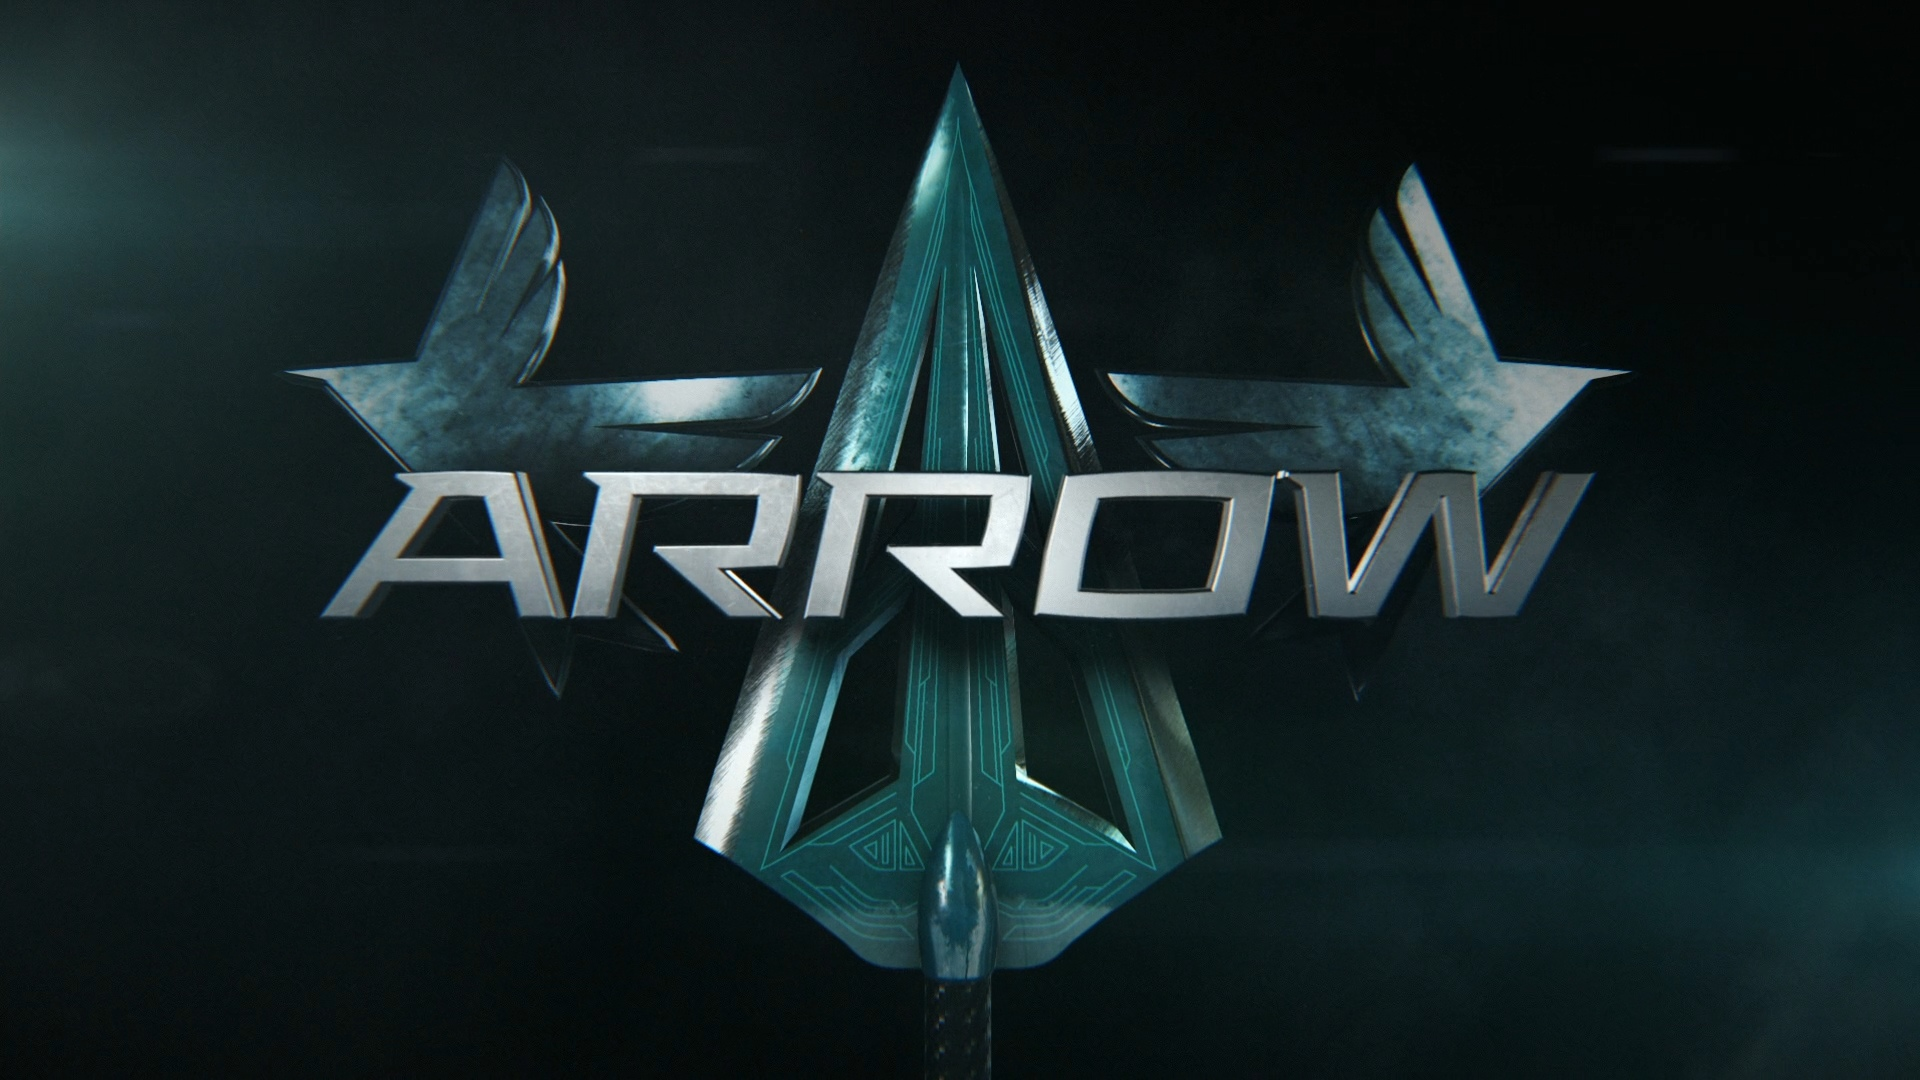 Arrow (TV Series) Episode: Green Arrow & The Canaries